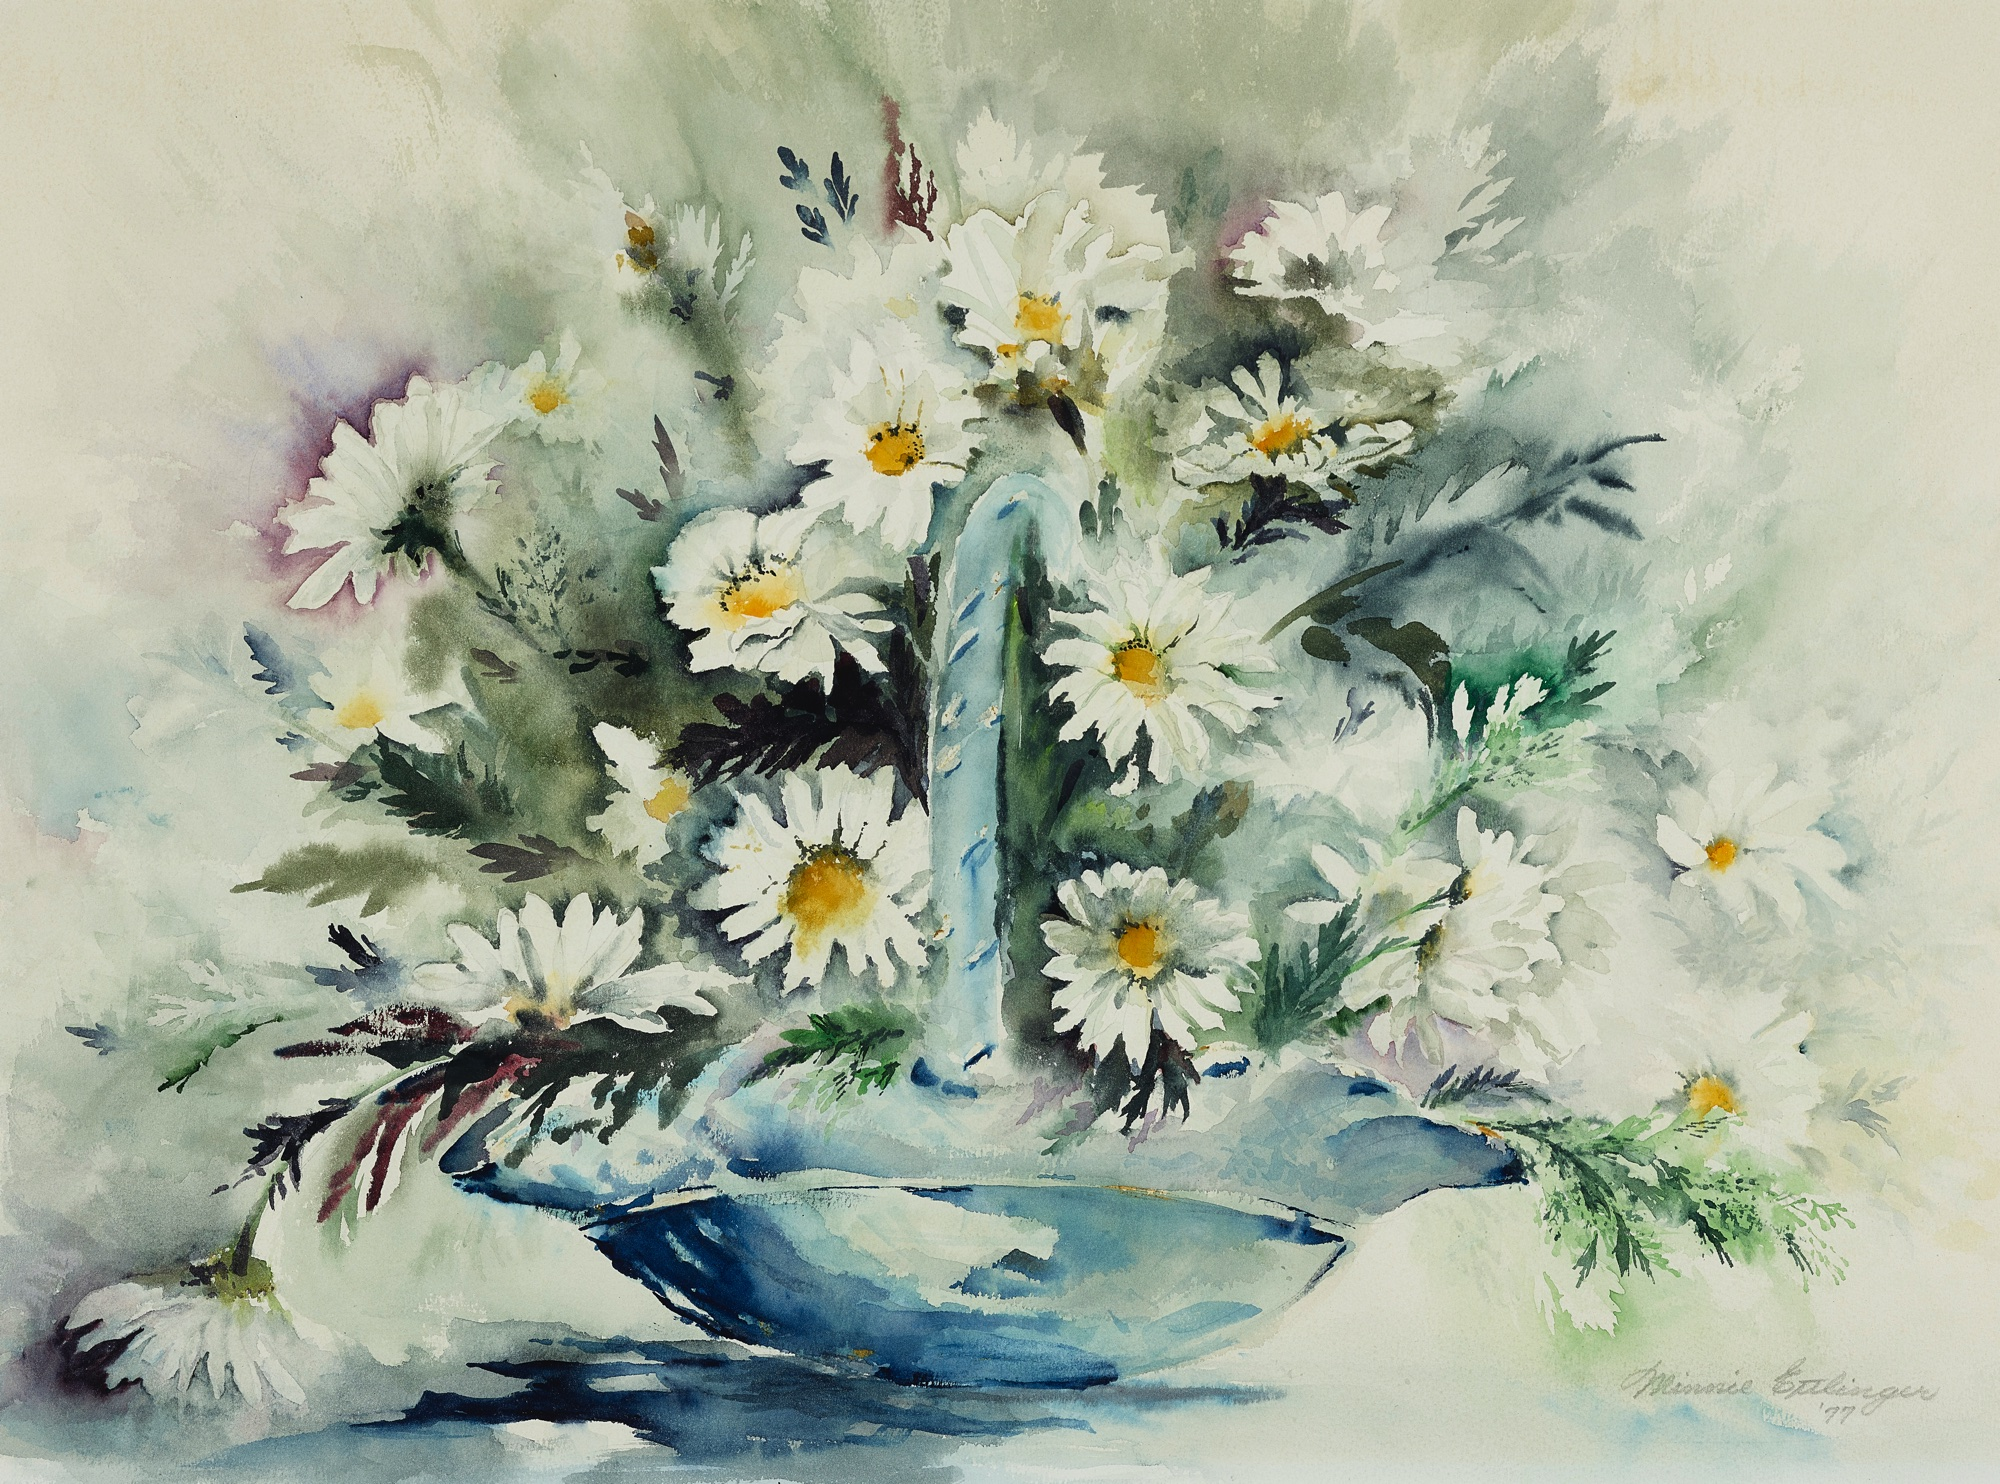 18. Minnie Ettlinger (1919-2006), Untitled (bouquet of daisies)